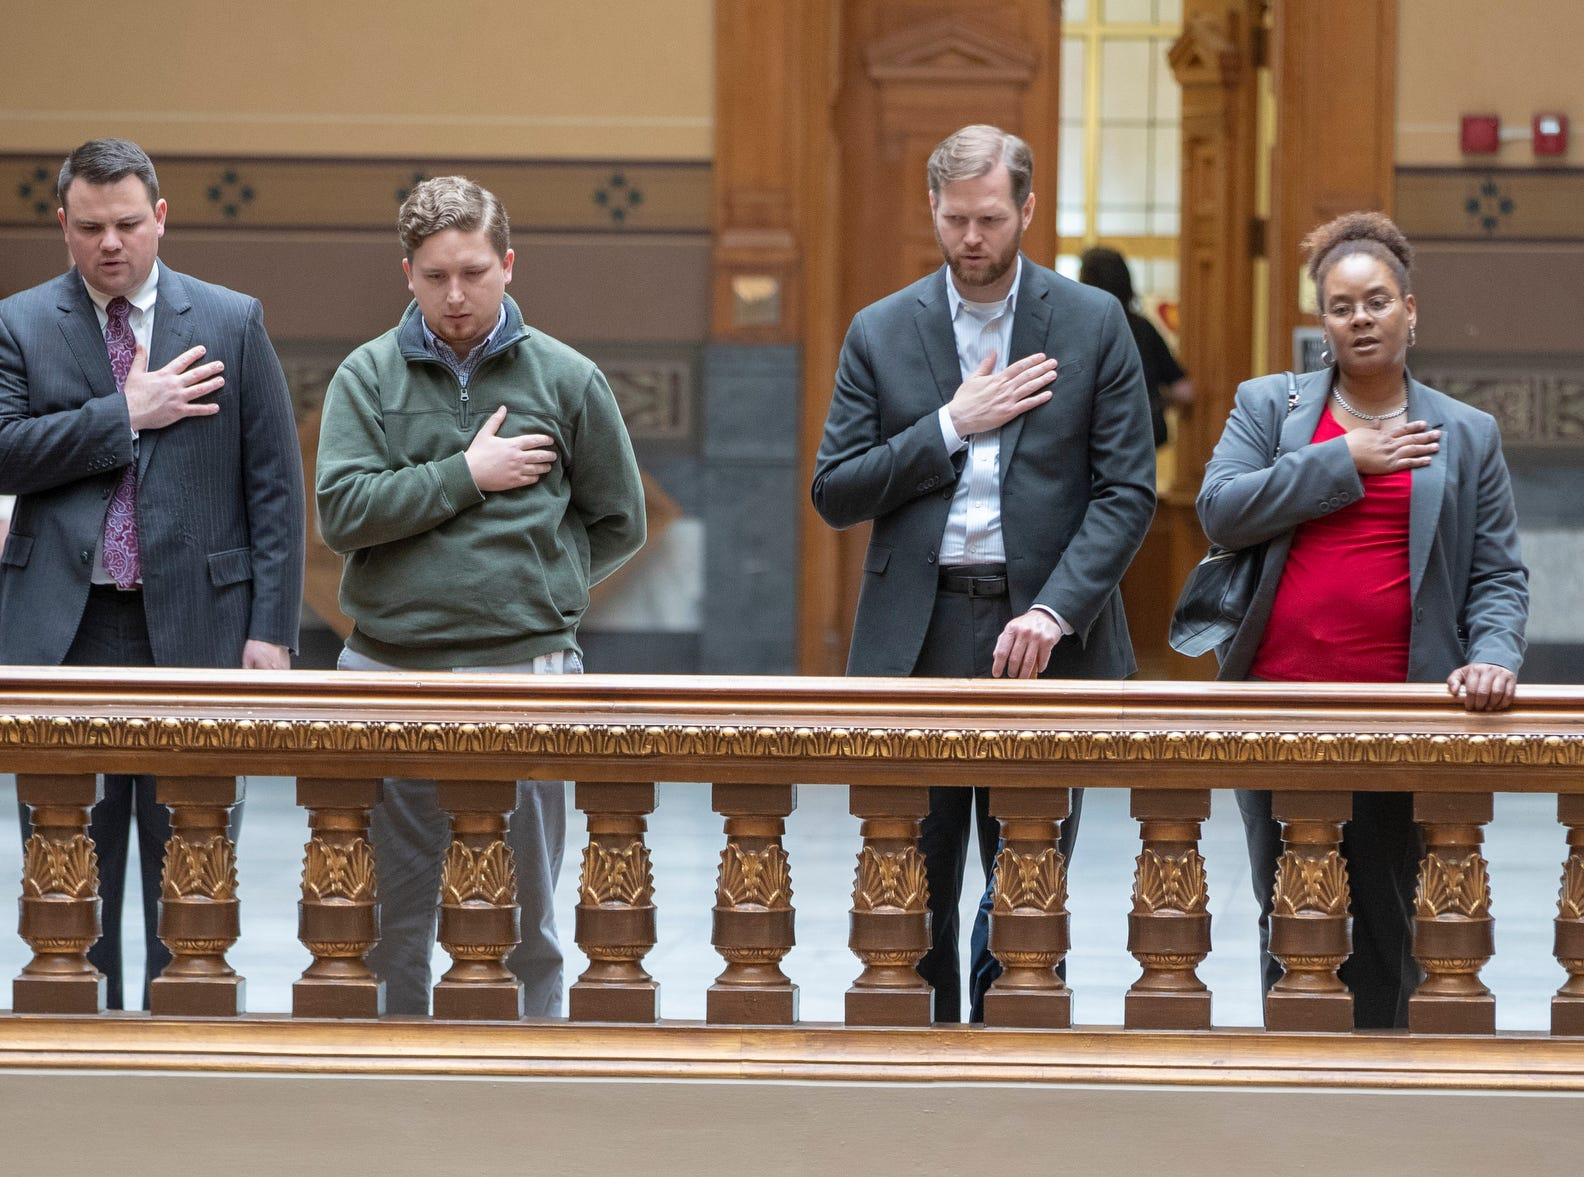 Attendees during the Pledge of Allegiance during a service for Indiana's Birch Bayh, who died on March 14, and was a three-term U.S. Senator, Indiana Statehouse, Indianapolis, Wednesday, May 1, 2019.